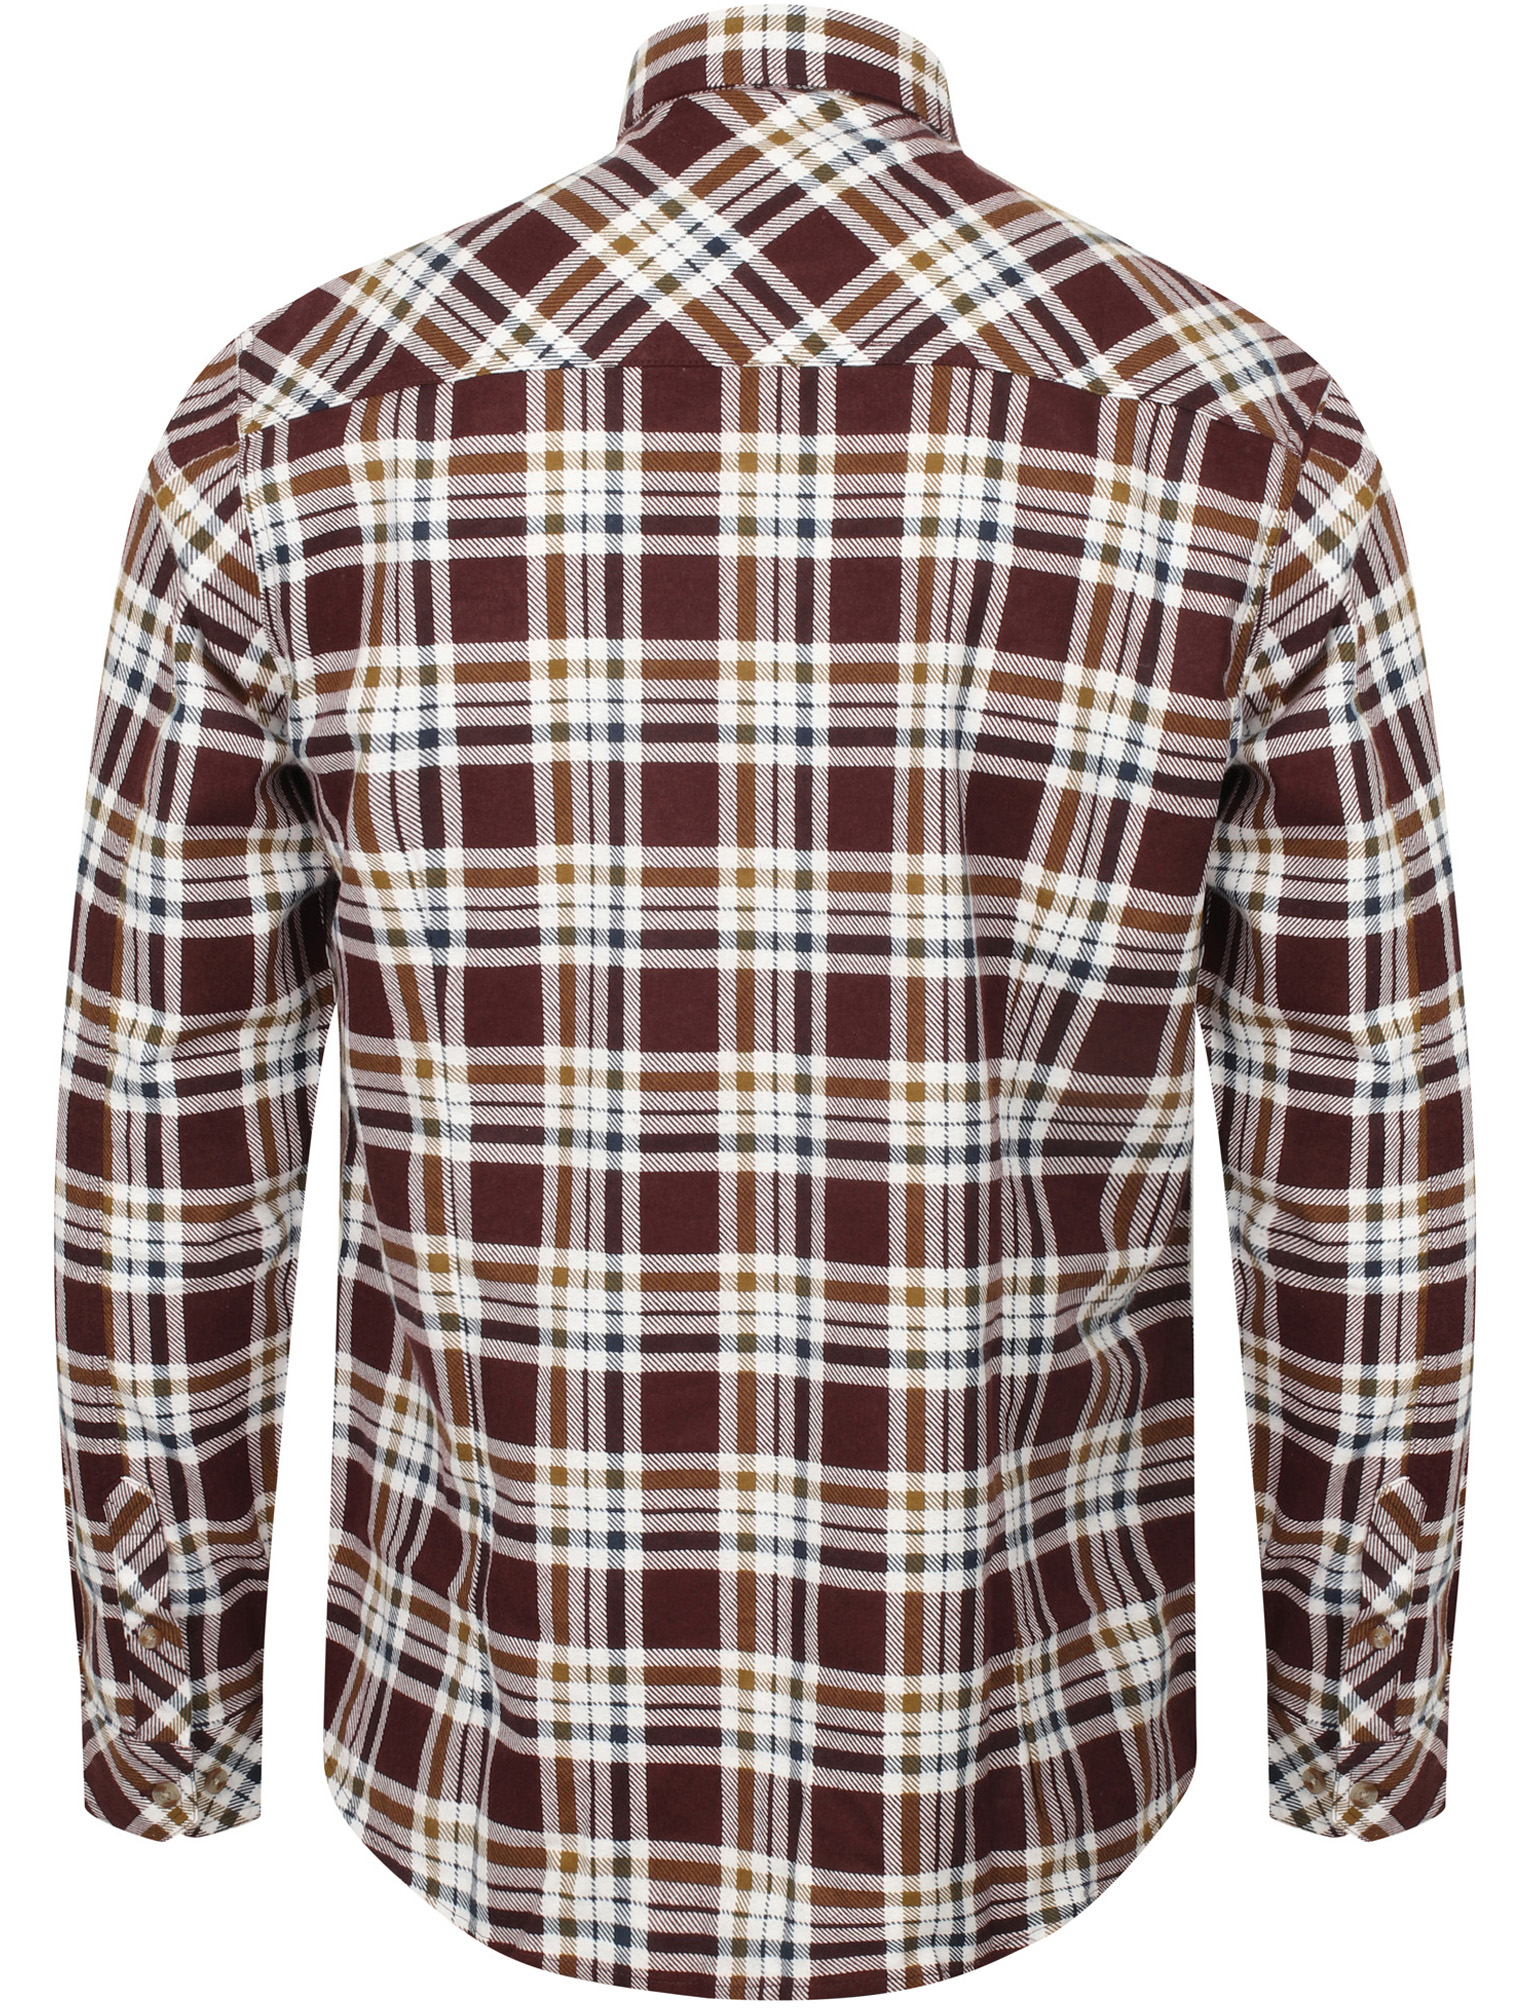 New-Mens-Tokyo-Laundry-Cotton-Long-Sleeve-Checked-Flannel-Shirt-Size-S-XL thumbnail 30